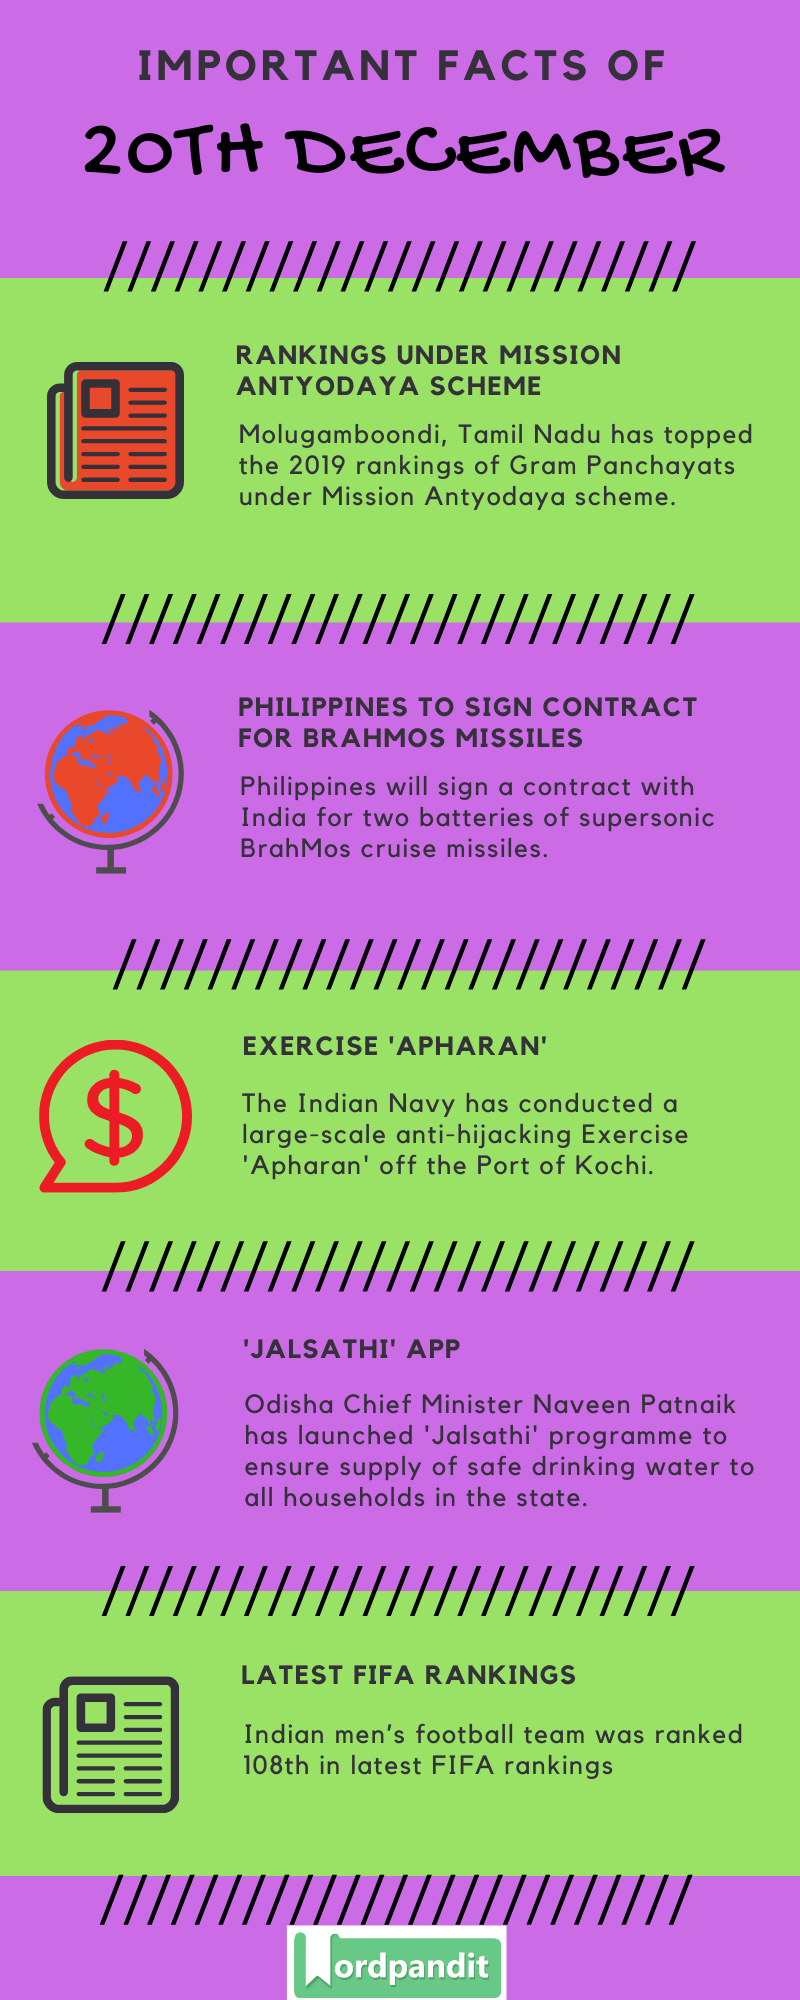 Daily Current Affairs 20 December 2019 Current Affairs Quiz 20 December 2019 Current Affairs Infographic